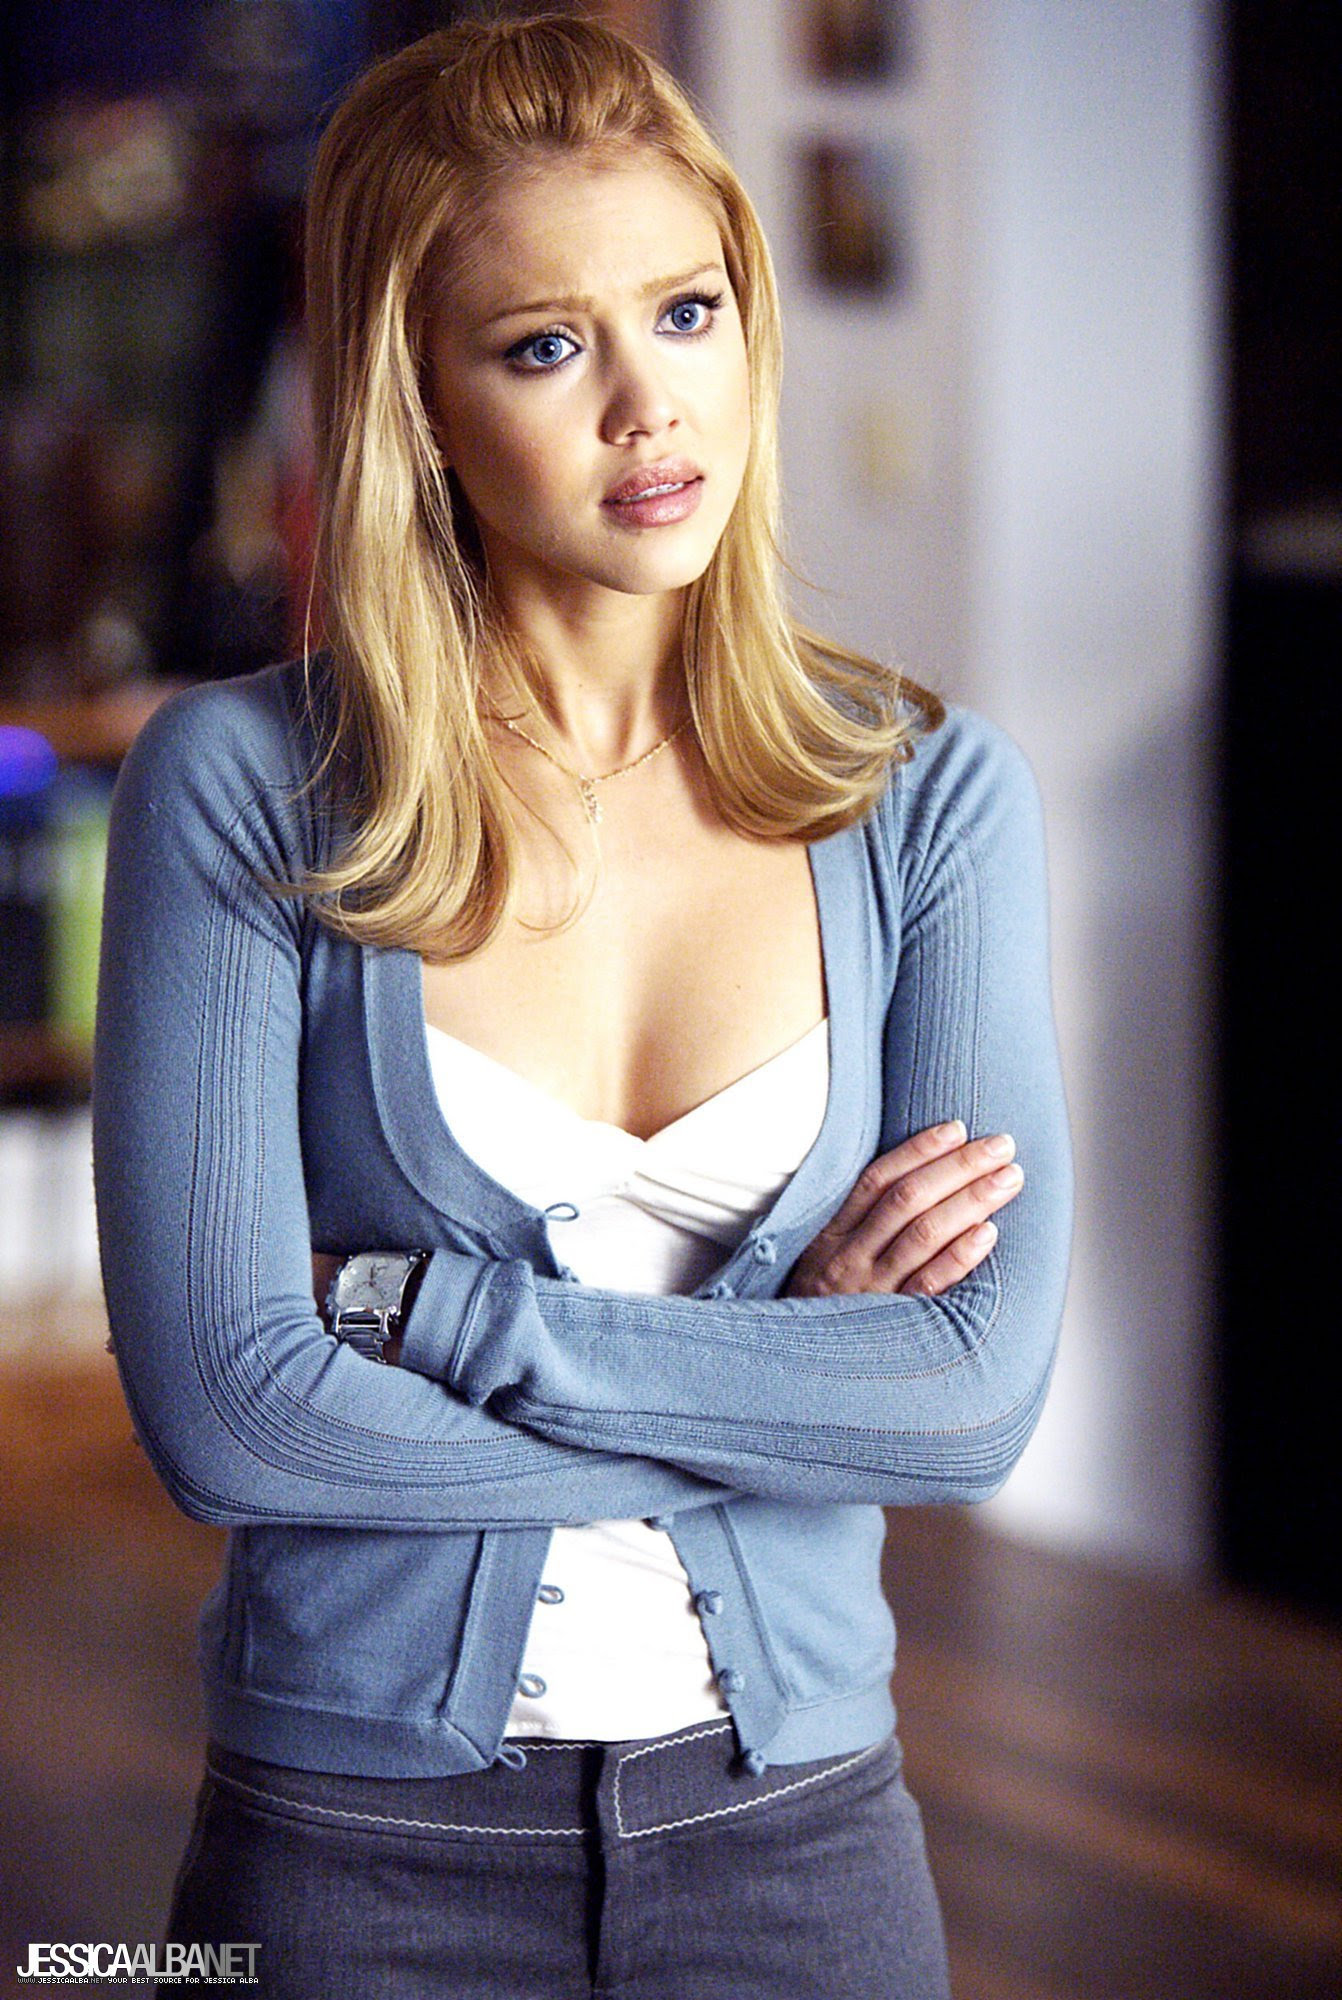 http://images2.fanpop.com/images/photos/6800000/Jessica-in-Fantastic-Four-jessica-alba-6878590-1342-2000.jpg